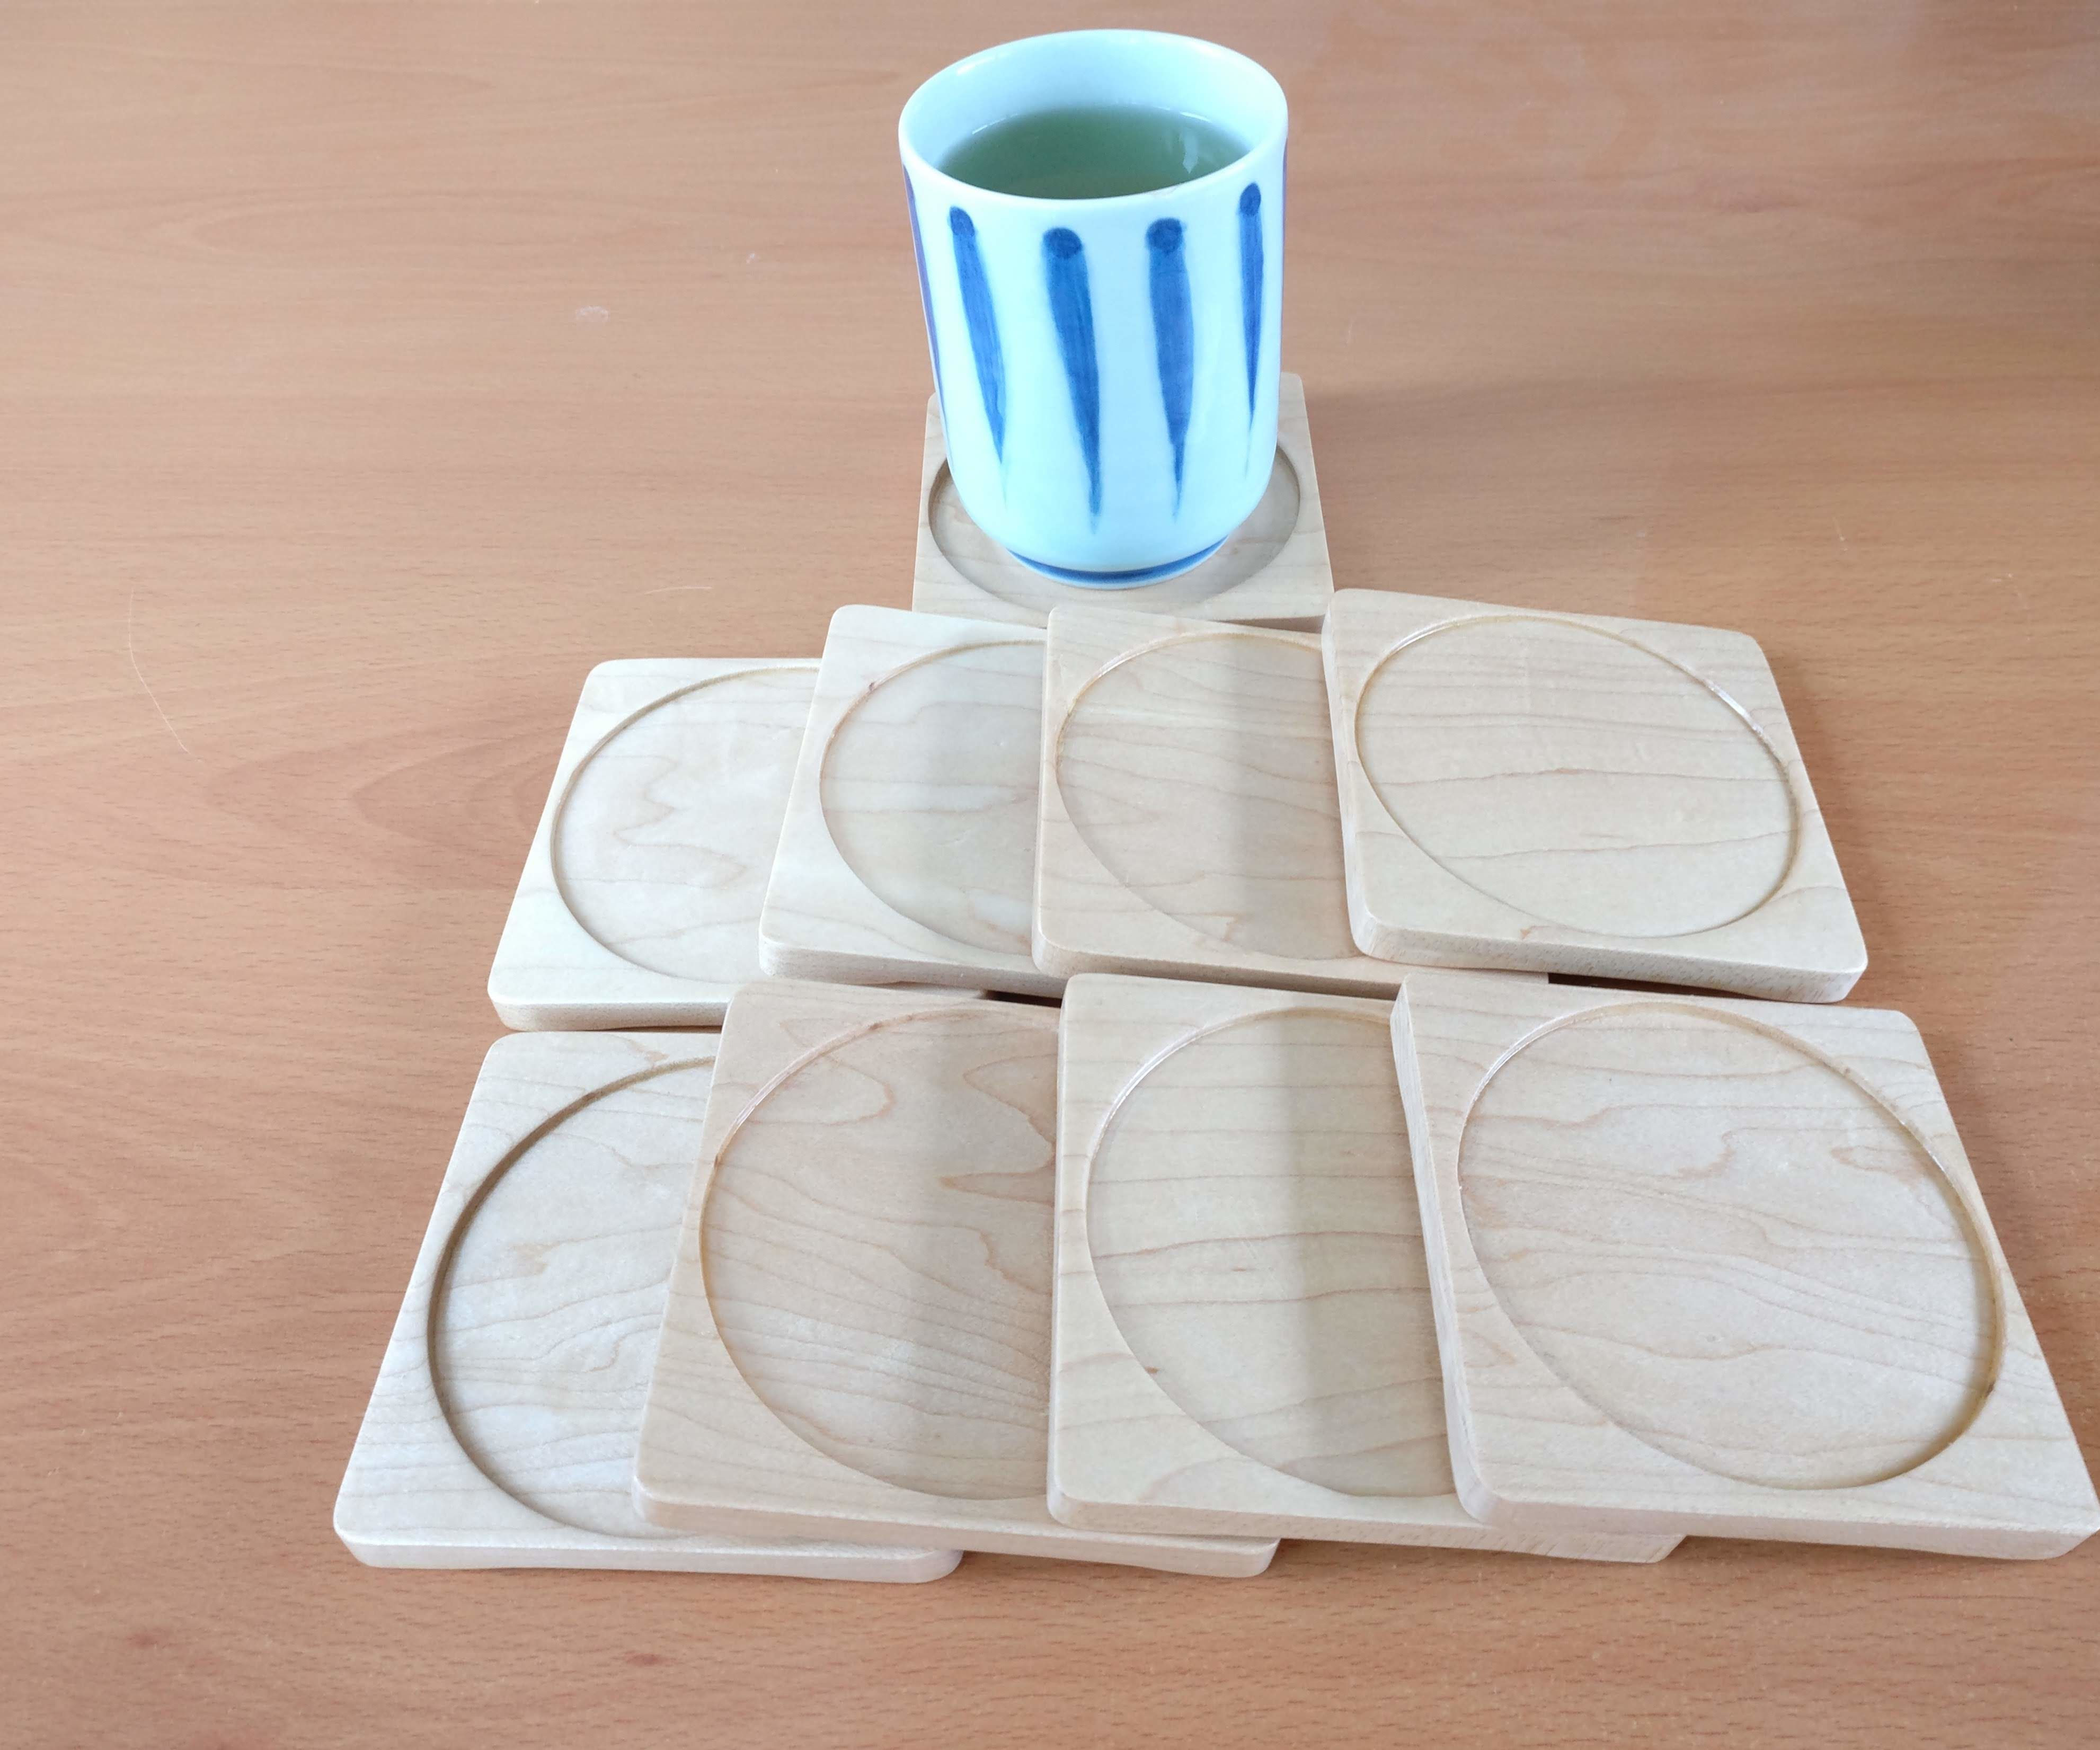 Making Some Simple Wooden Coasters